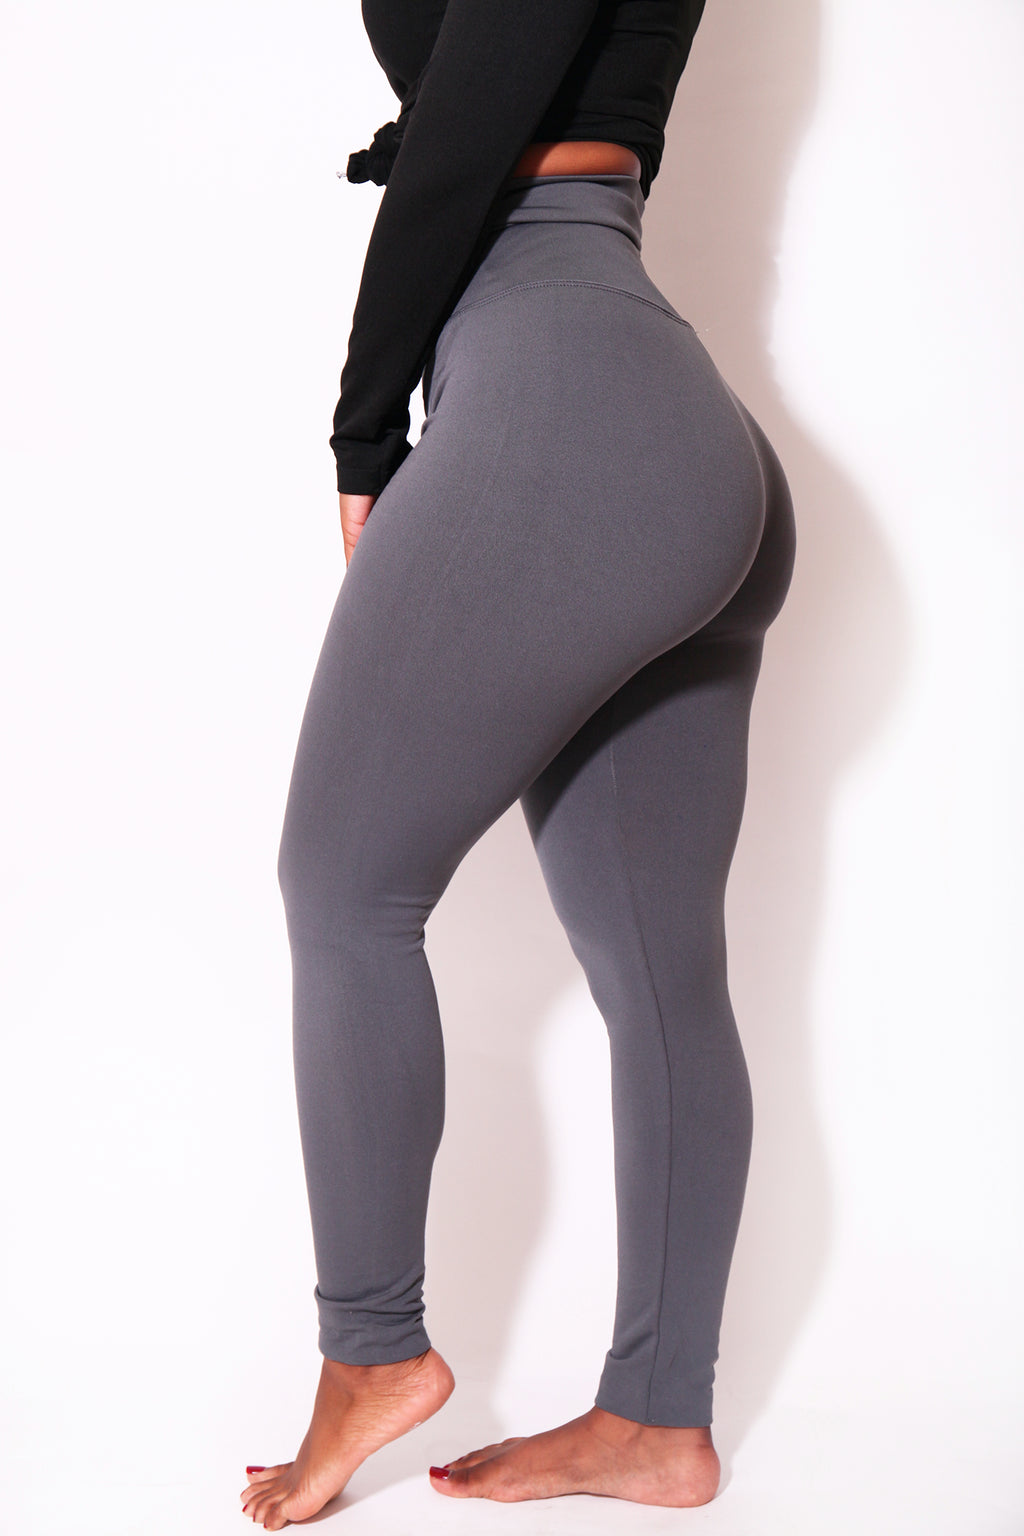 The Gray Yoga Tummy Control Legging fits up to PLUS! (Choose Your Size!) - Babes And Felines | Specializing in Fashionable Staple Pieces for Every Shape and Size (9294263242)